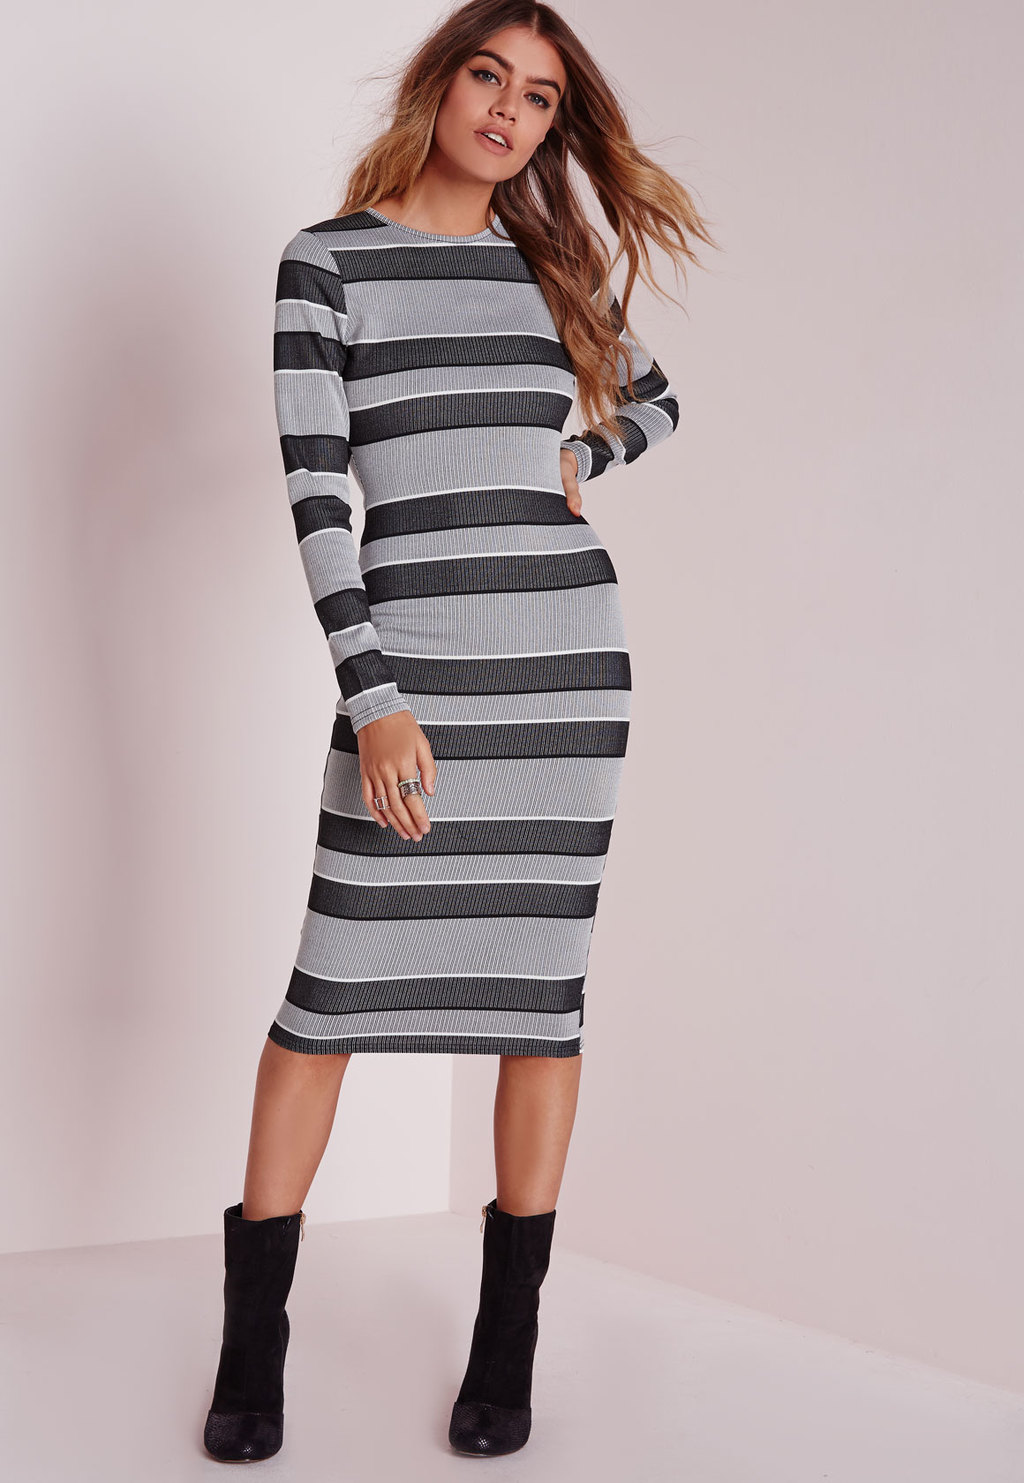 Long Sleeve Midi Dress Grey Stripe, Grey - length: below the knee; fit: tight; pattern: horizontal stripes; style: bodycon; hip detail: draws attention to hips; predominant colour: light grey; occasions: casual, evening; fibres: polyester/polyamide - stretch; neckline: crew; sleeve length: long sleeve; sleeve style: standard; texture group: jersey - clingy; pattern type: fabric; season: a/w 2015; wardrobe: basic